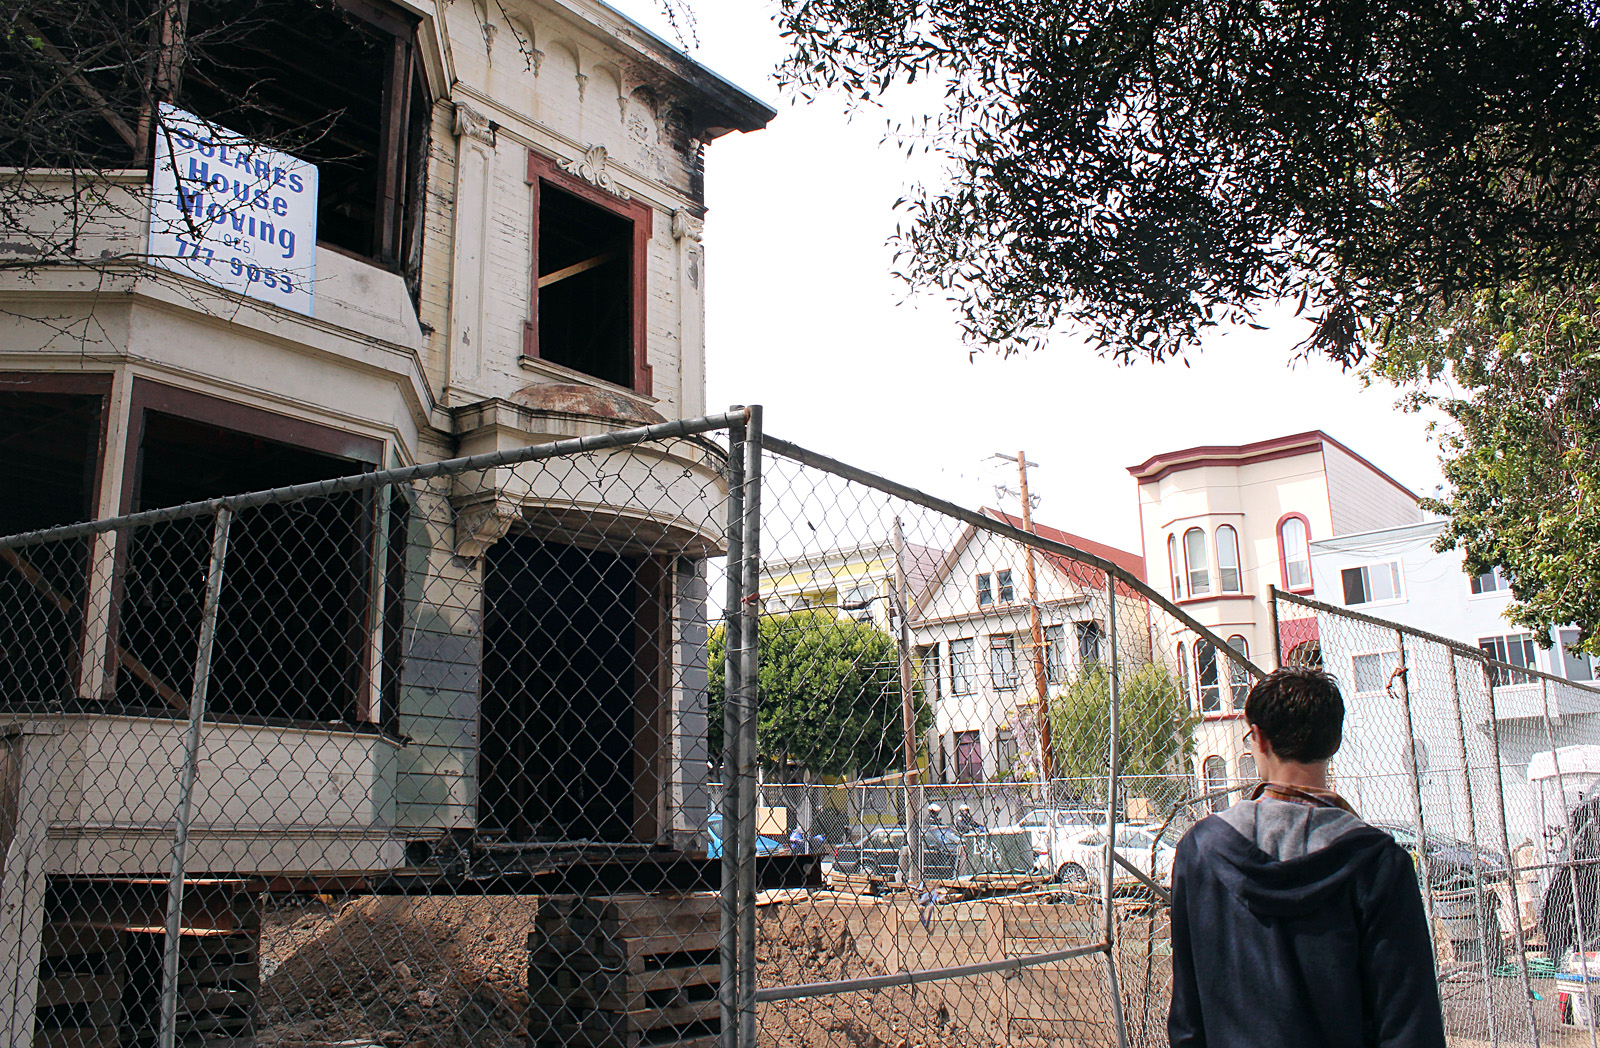 A man looks at the ruined old parsonage.